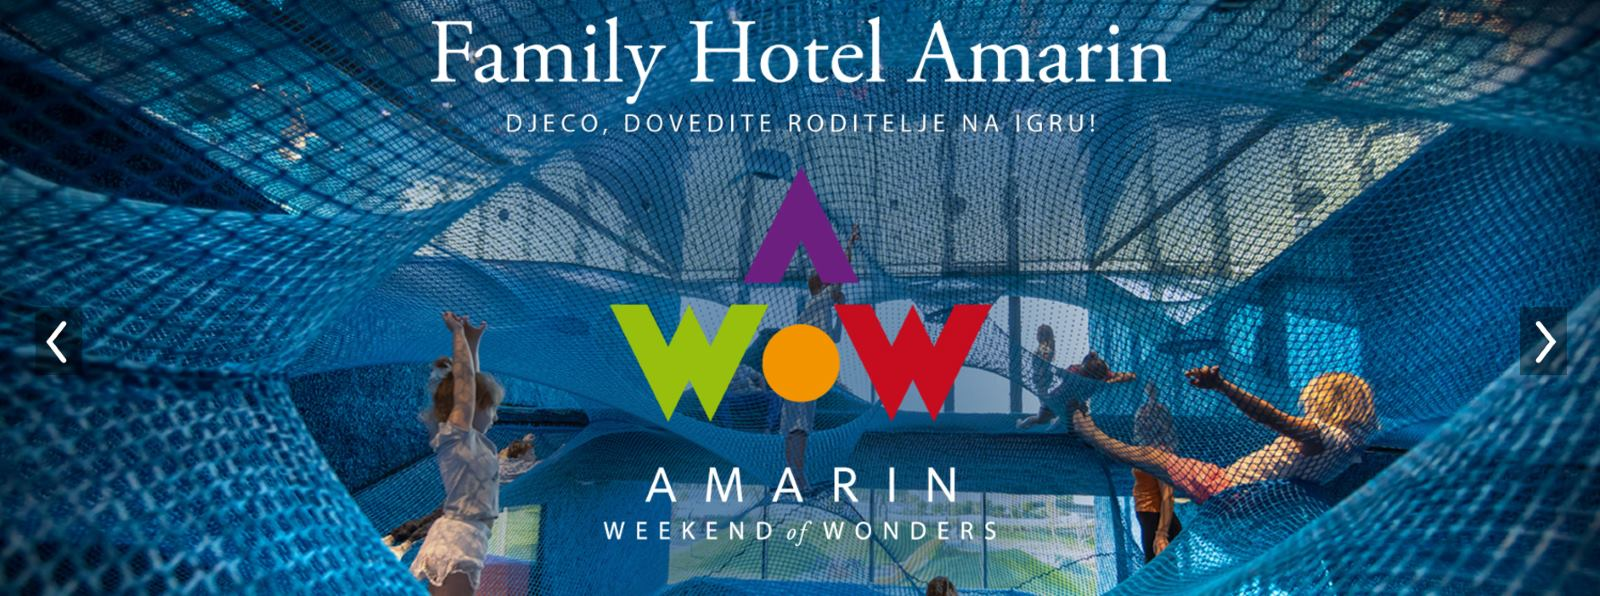 Weekend of Wonders u Hotelu Amarin nudi zanimljiv program za najmlađe